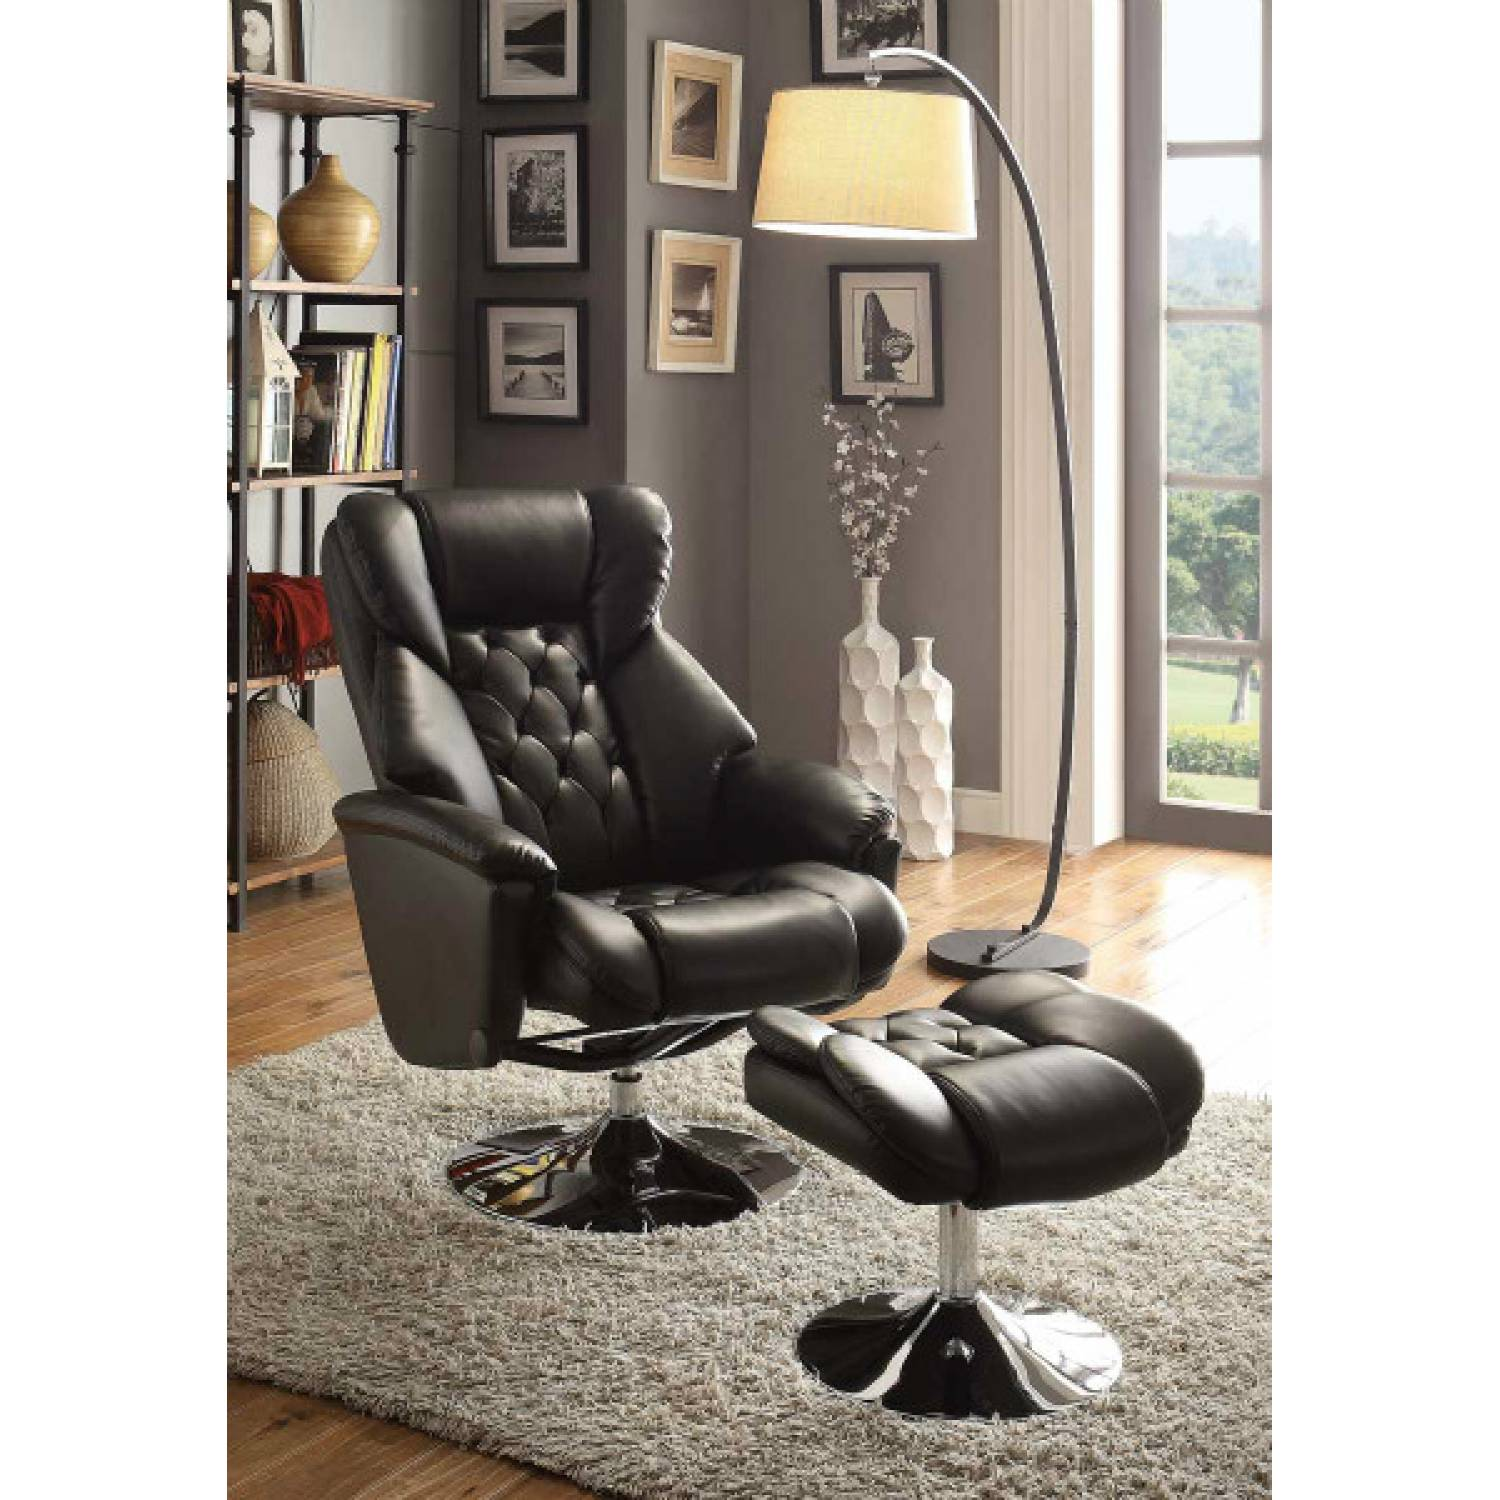 Super Aleron Swivel Reclining Chair With Ottoman Black Bonded Leather Match Pdpeps Interior Chair Design Pdpepsorg